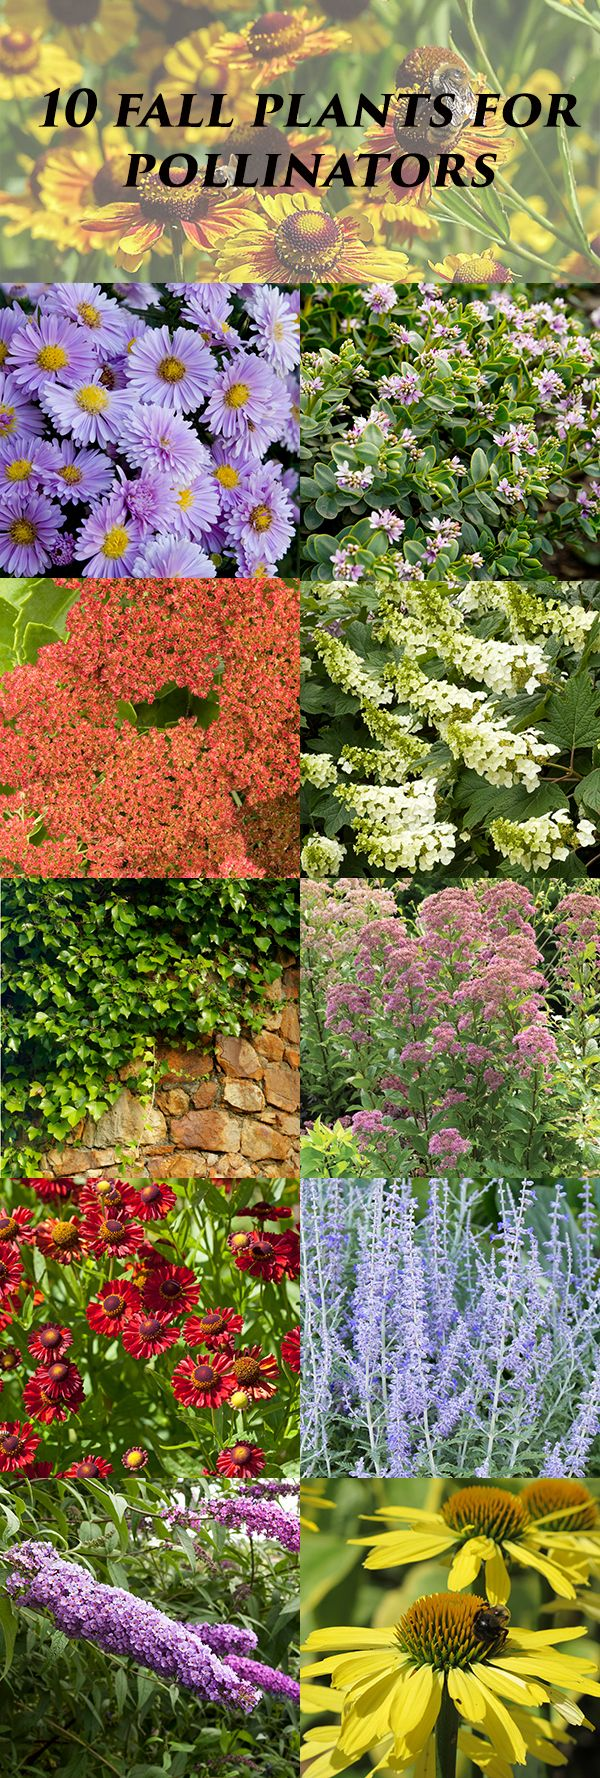 25 Best Ideas About Fall Planting On Pinterest Fall Planting Vegetables Fall Planting Guide